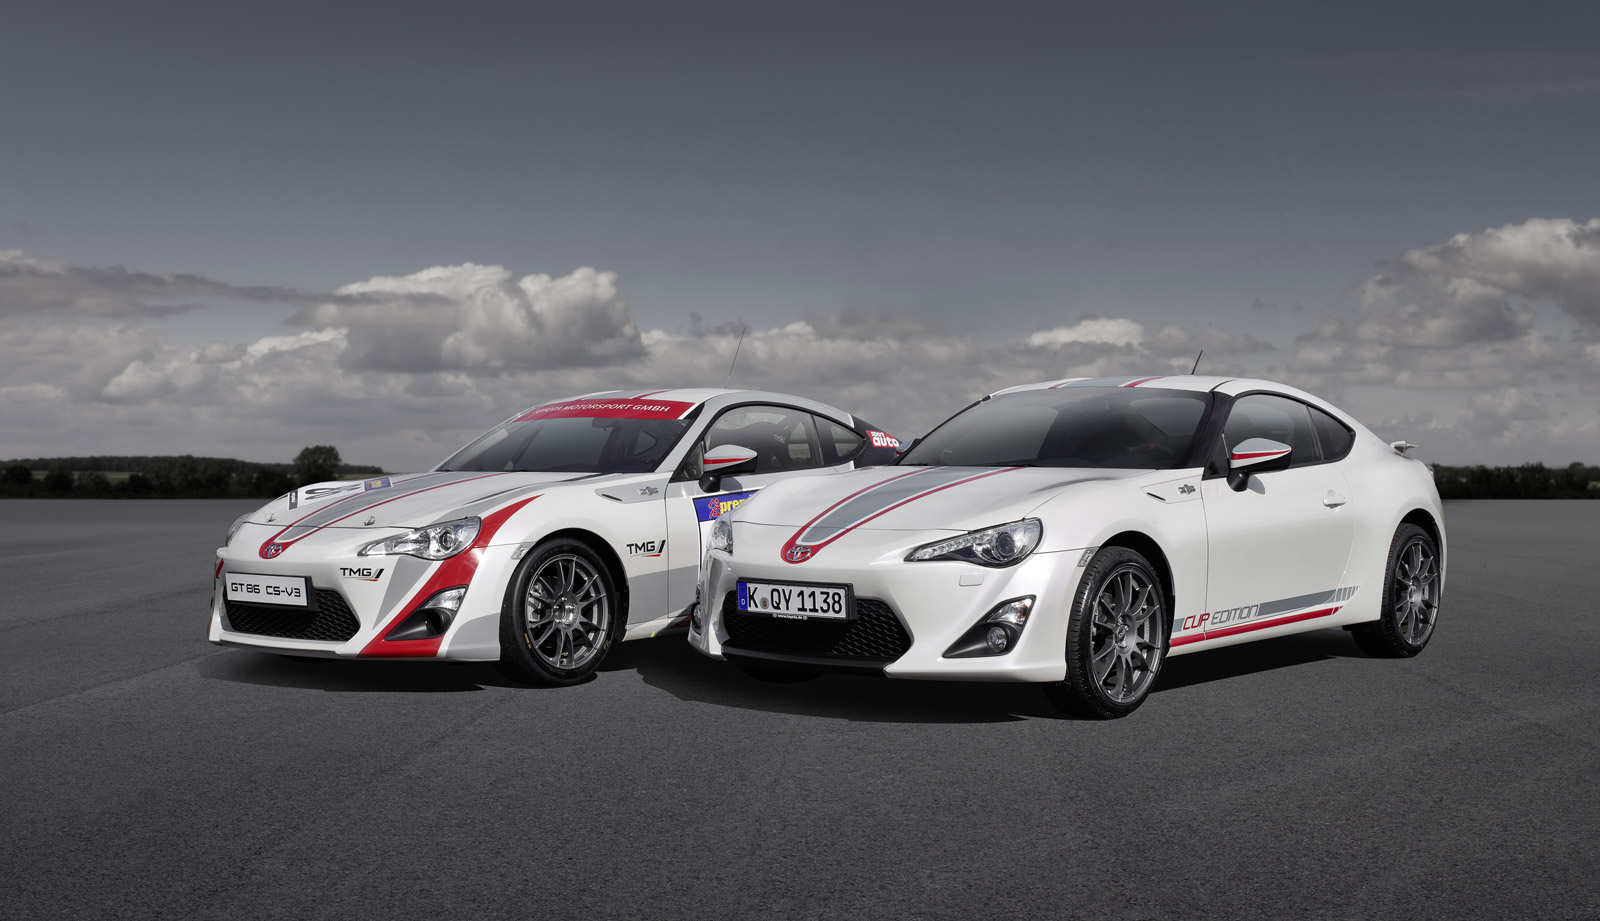 Toyota Gt 86 Cup N 252 Rburgring For Sale Bmw M3 Gt Today S